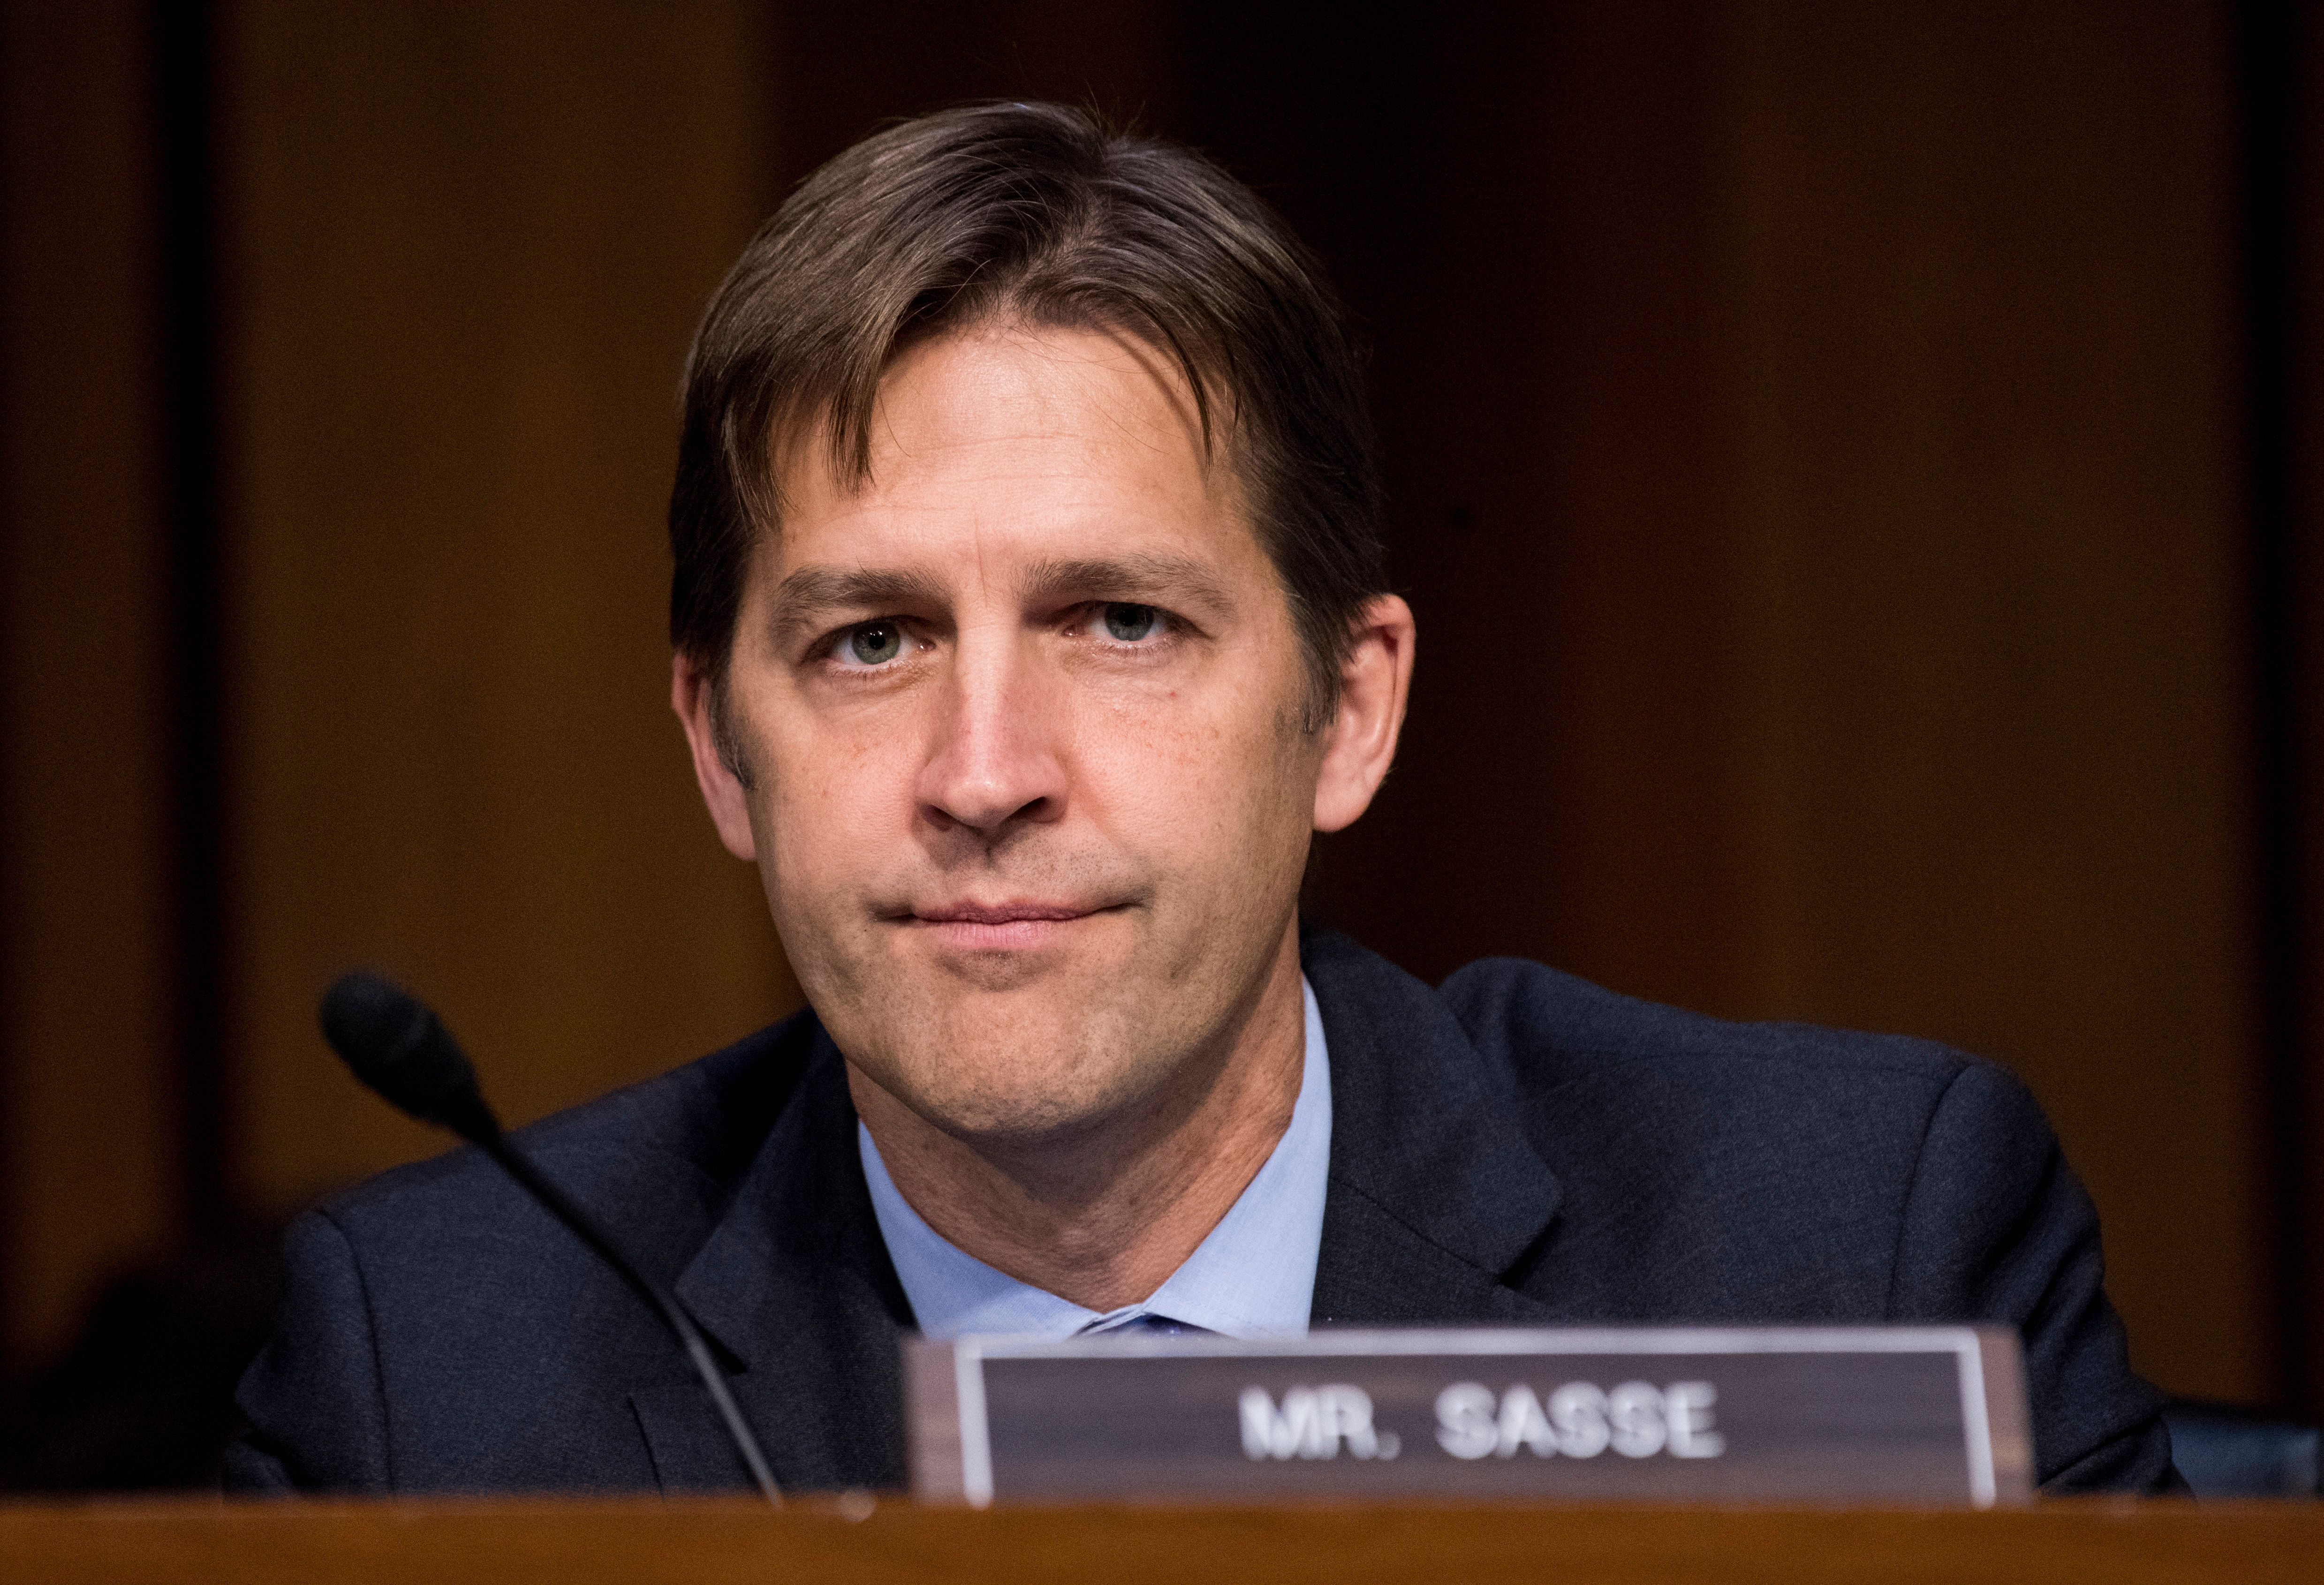 UNITED STATES - OCTOBER 18: Sen. Ben Sasse, R-Neb., listens as Attorney General Jeff Sessions testifies during the Senate Judiciary Committee hearing on Full committee hearing on 'Oversight of the U.S. Department of Justice' on Wednesday, Oct. 18, 2017. (Photo By Bill Clark/CQ Roll Call)